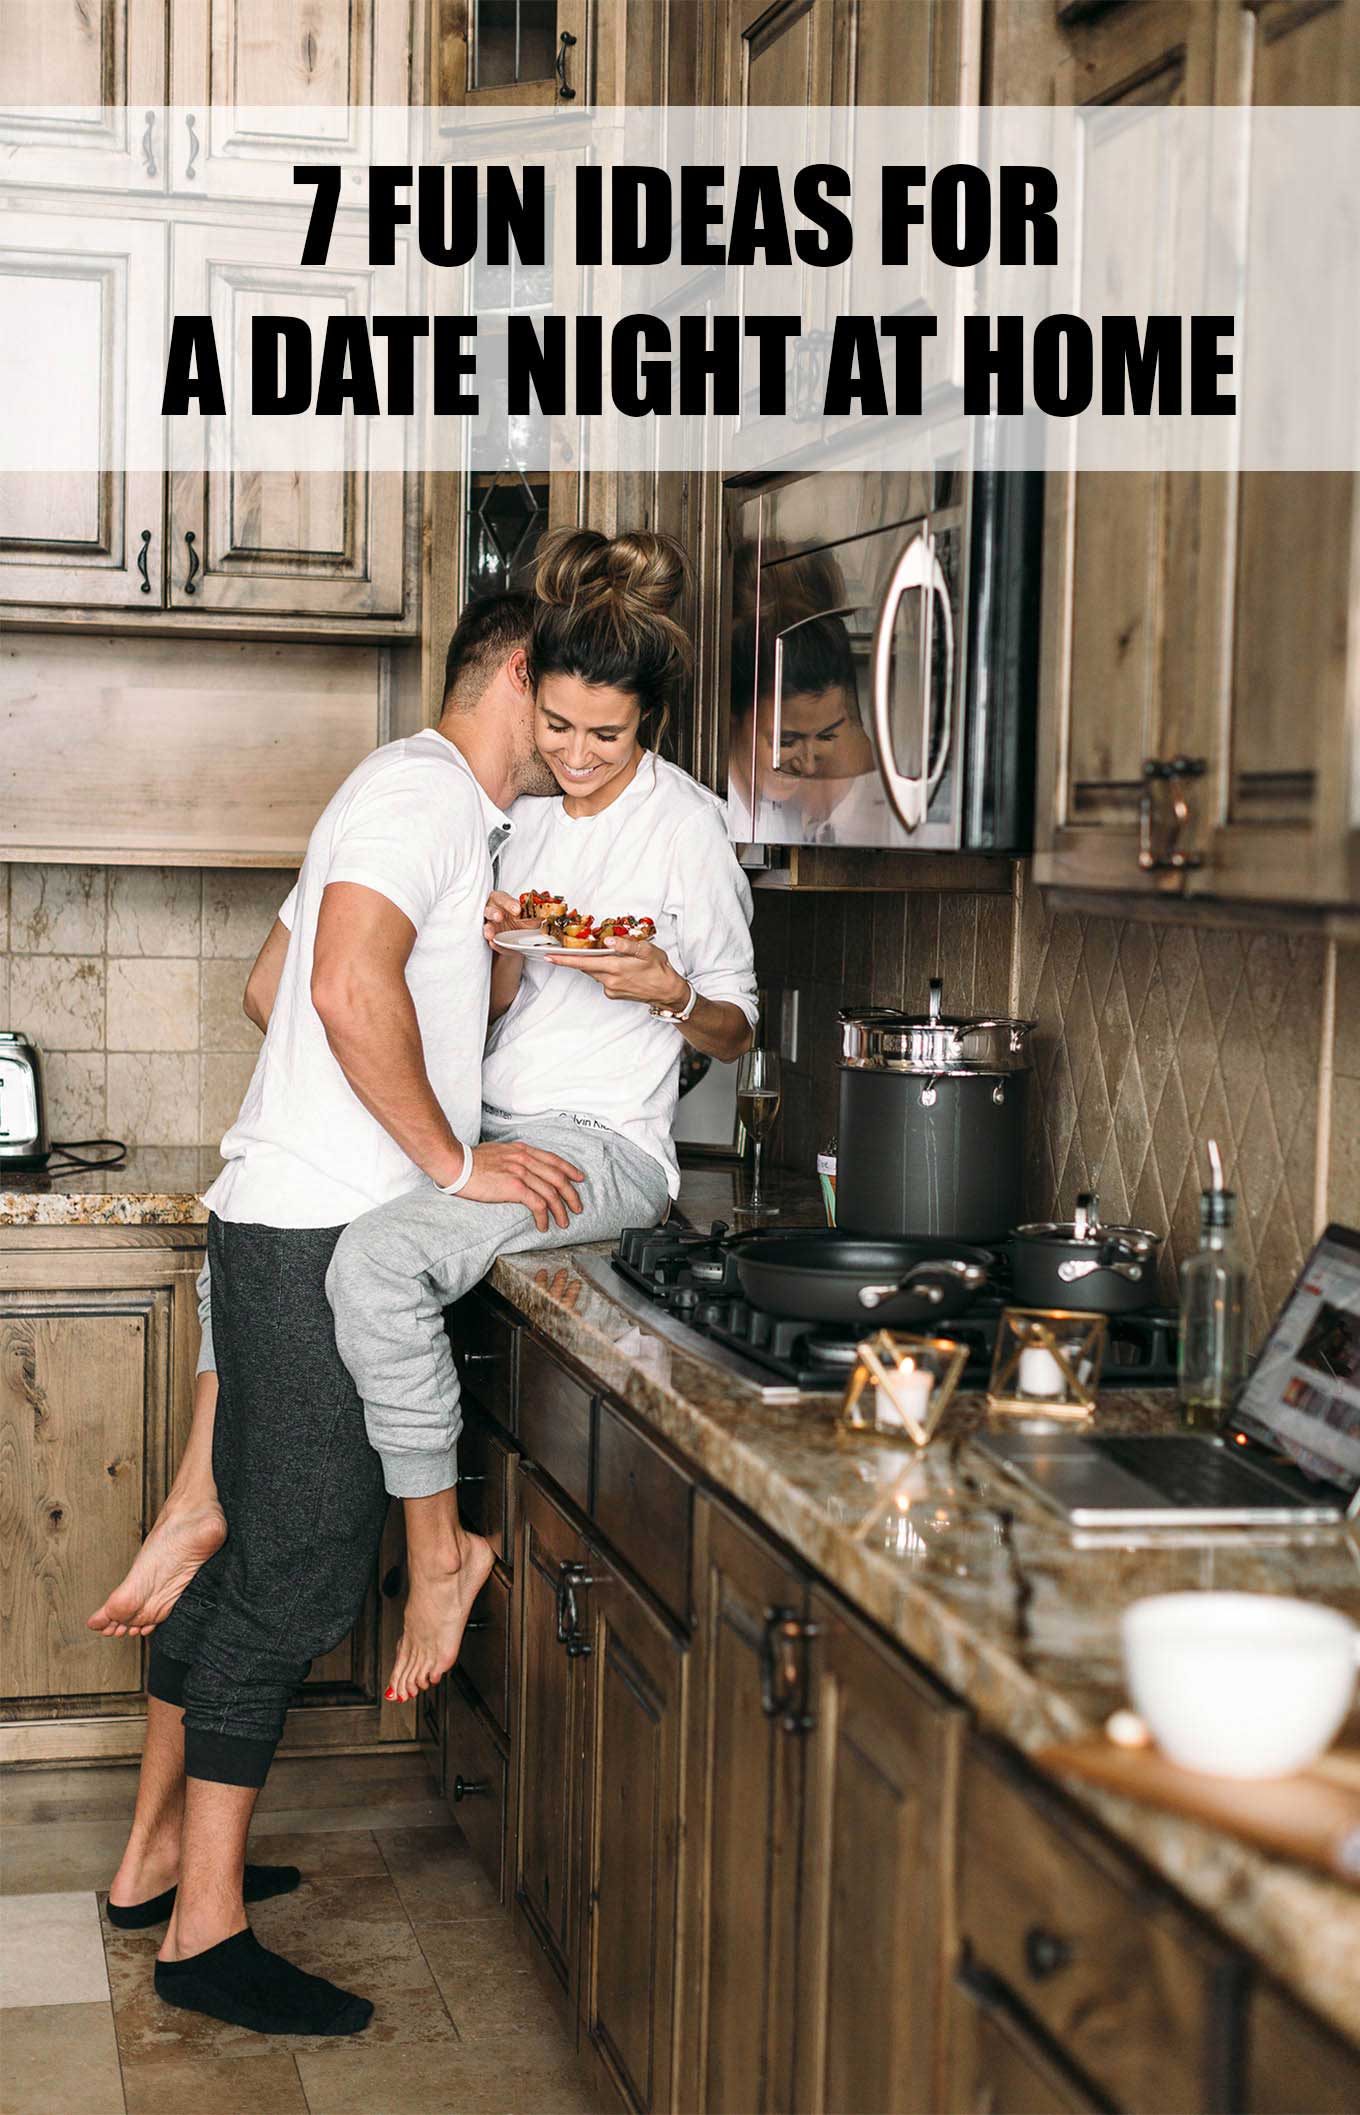 7 fun ideas for a date night at home   hello fashion